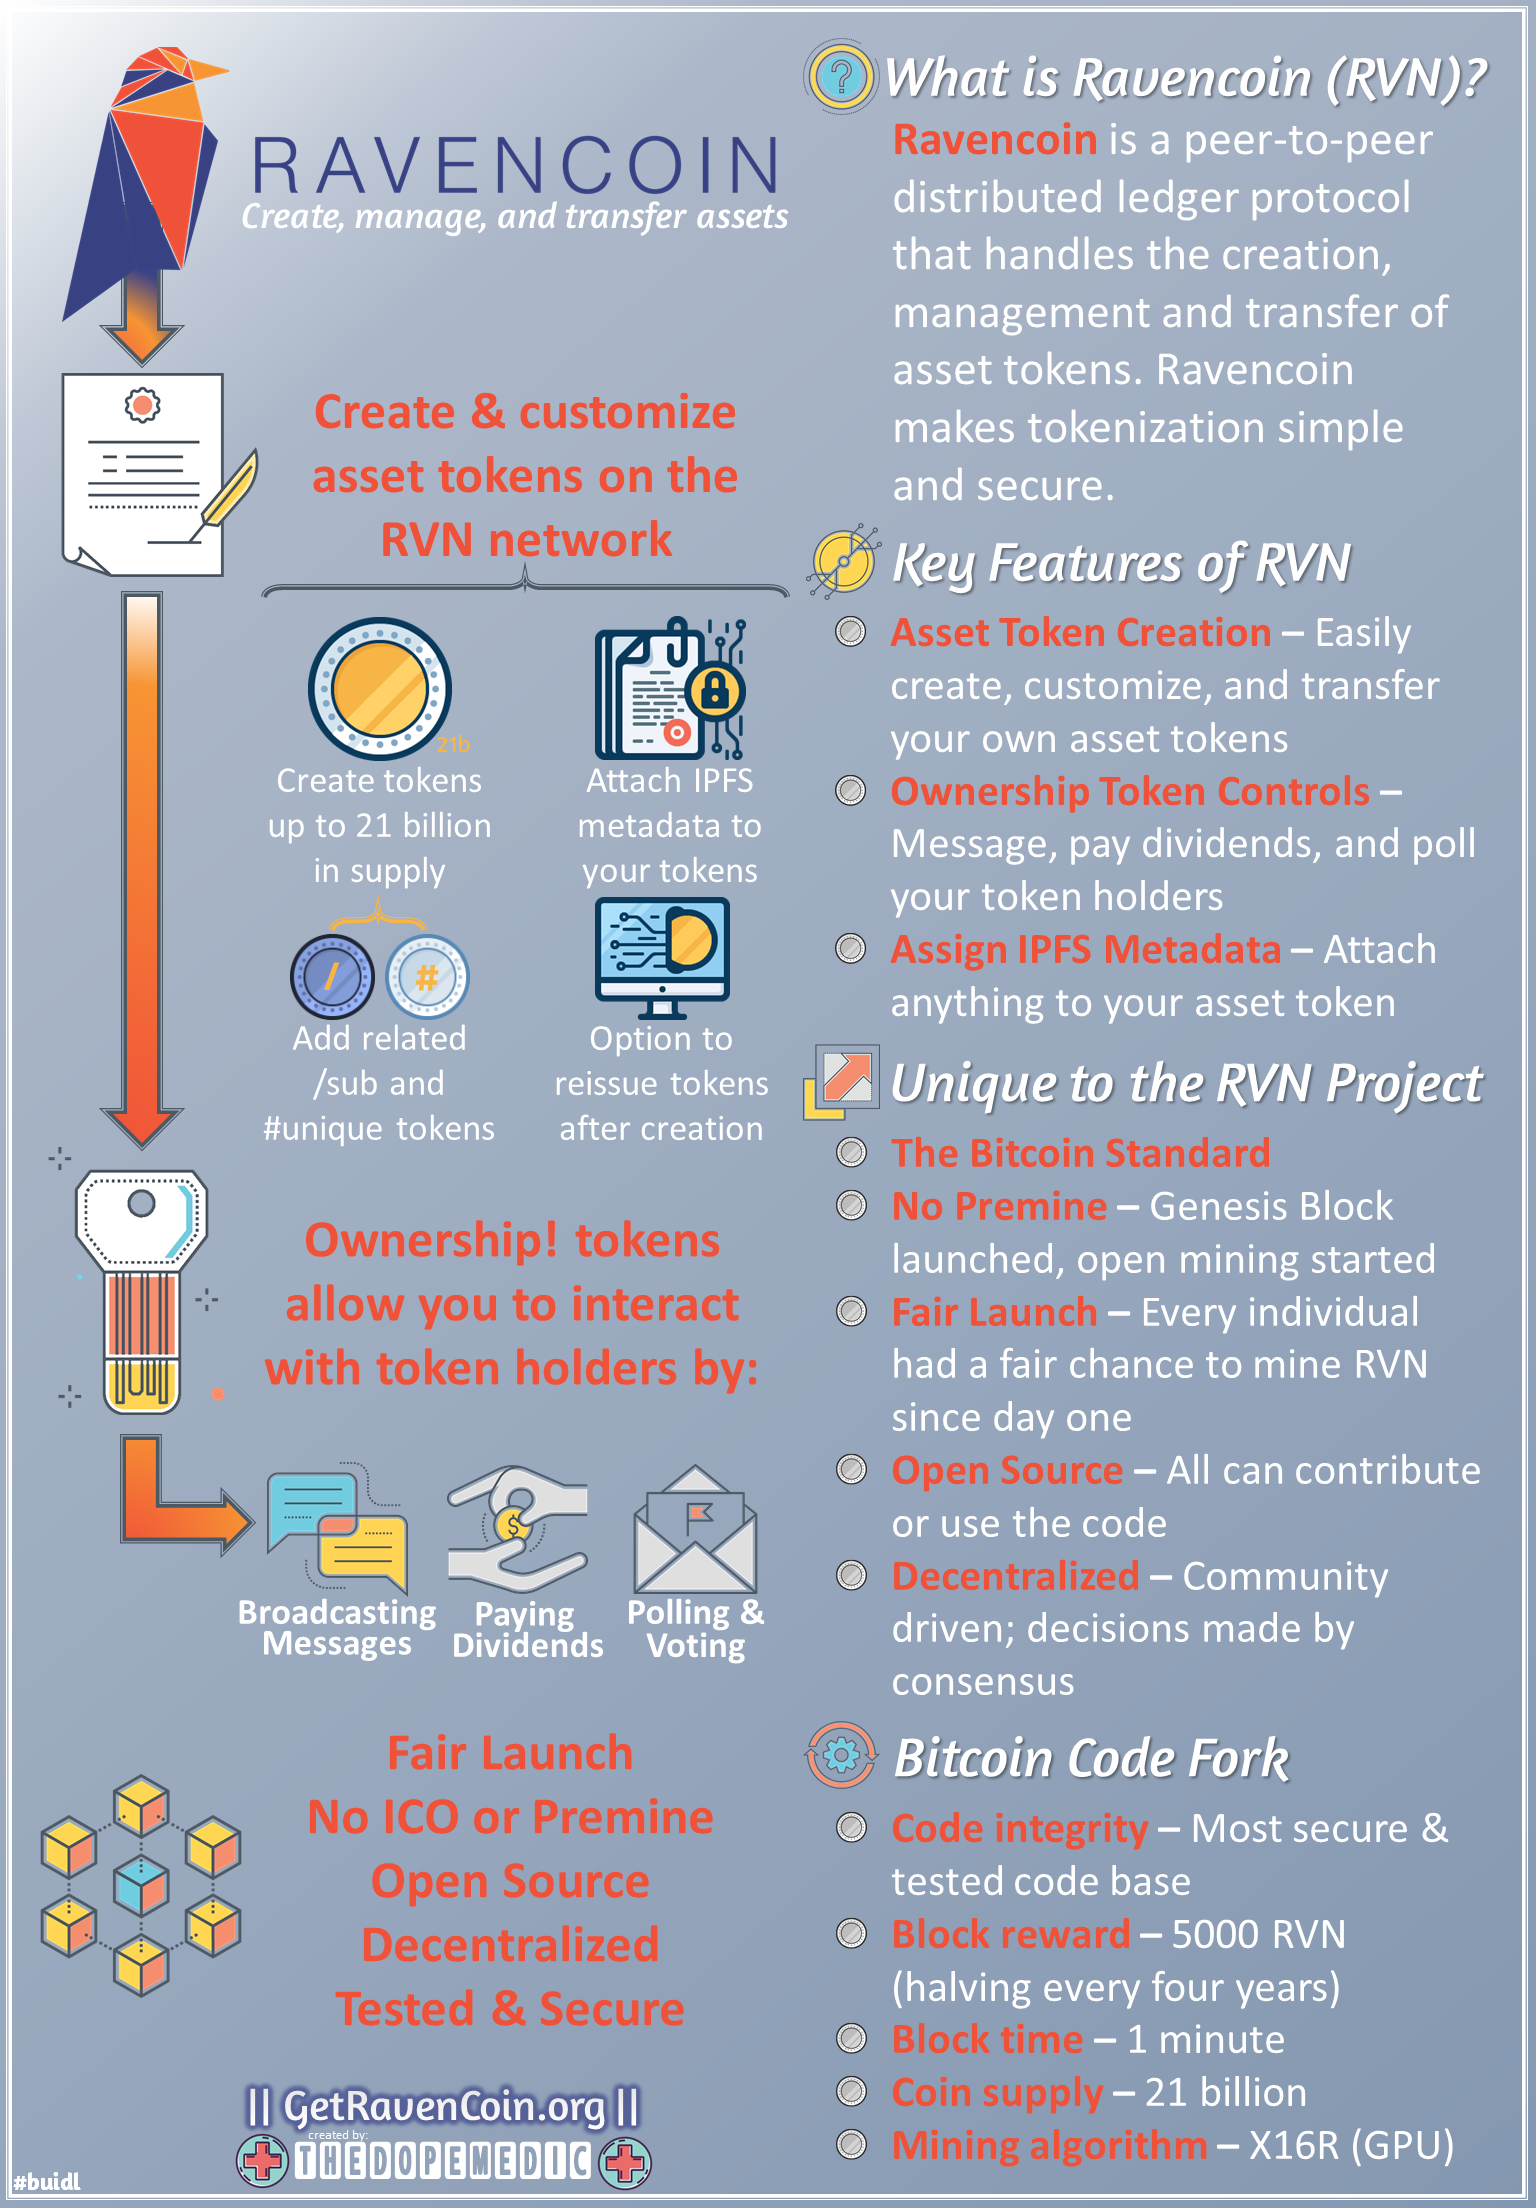 Ravencoin_Infographic_1st_Series_2018_FINAL.png